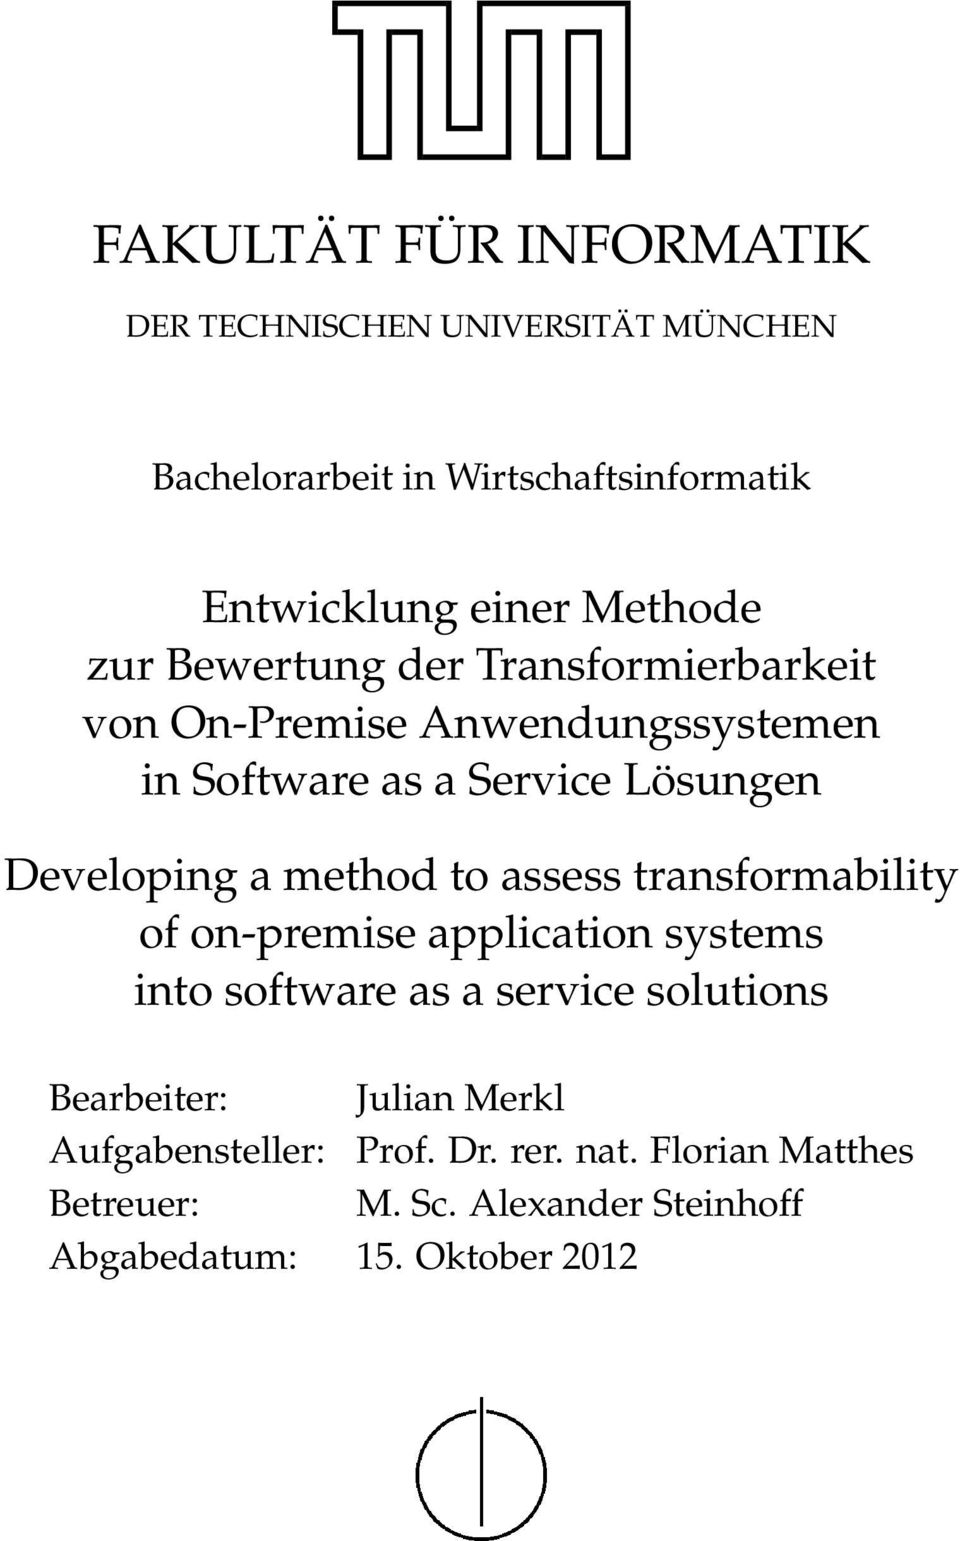 Developing a method to assess transformability of on-premise application systems into software as a service solutions